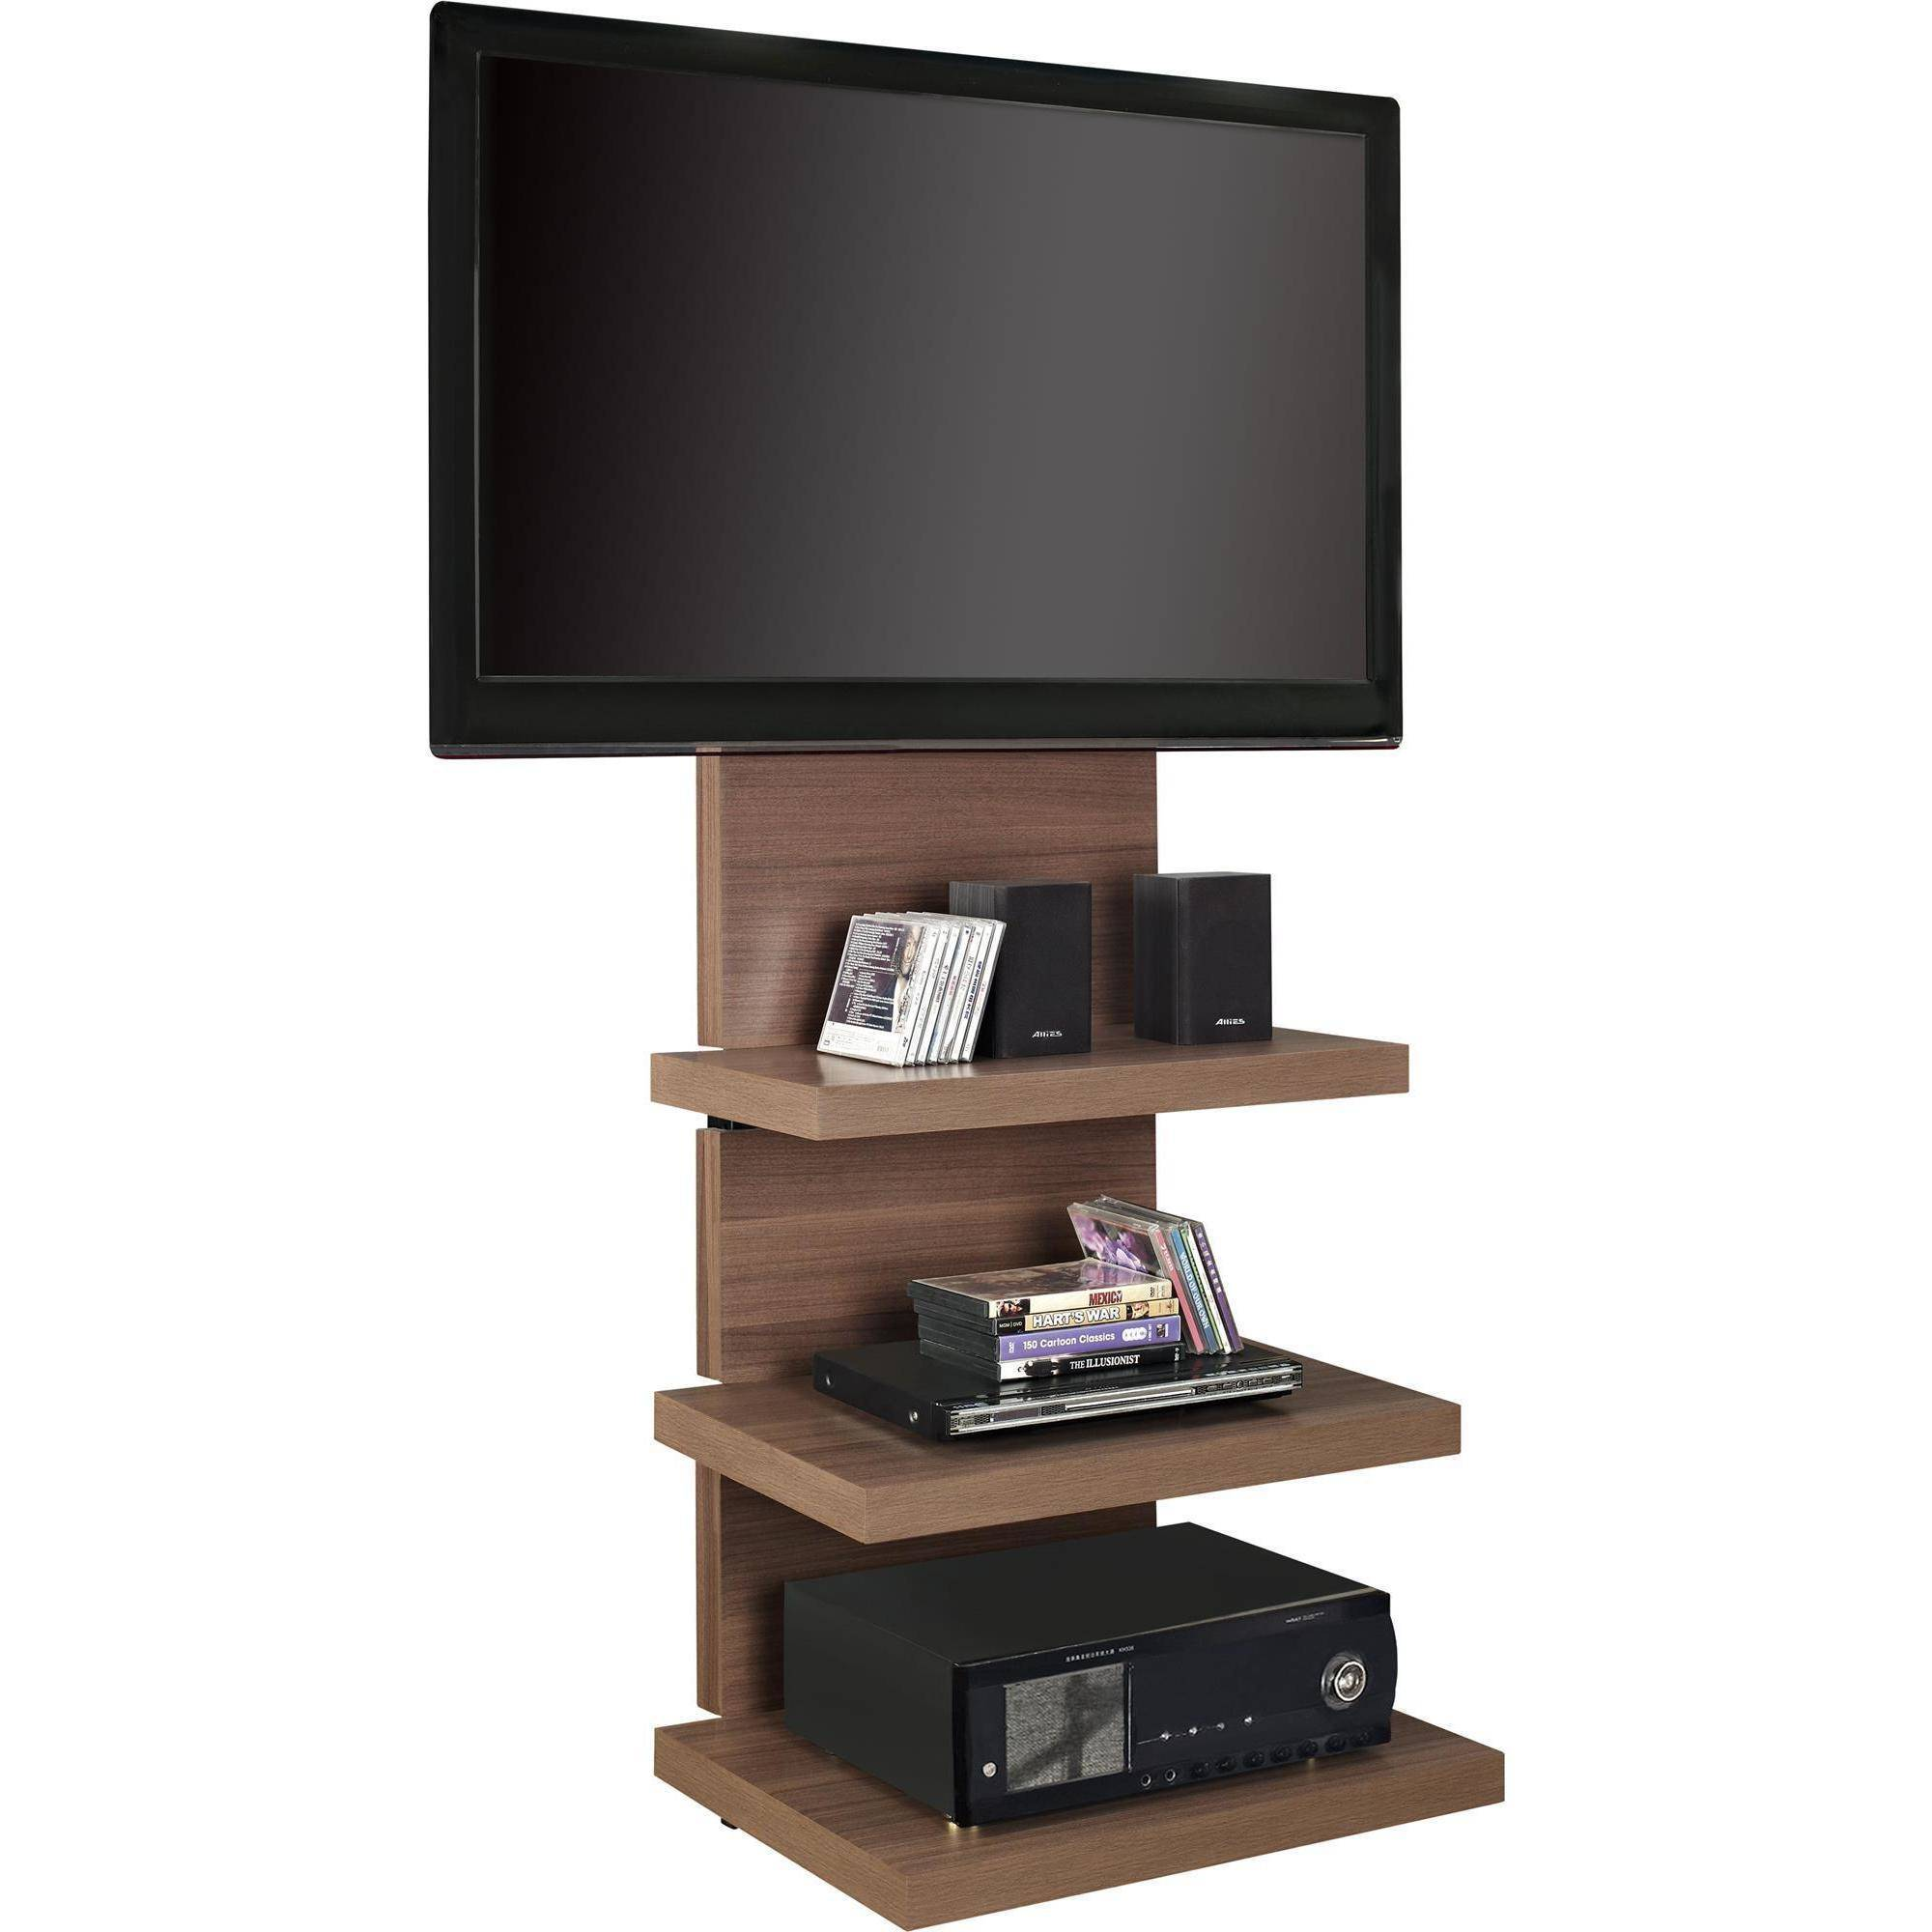 Tv Stand Altra Wall Mount Tv Stand With 3 Shelves For Tvs Up To 60